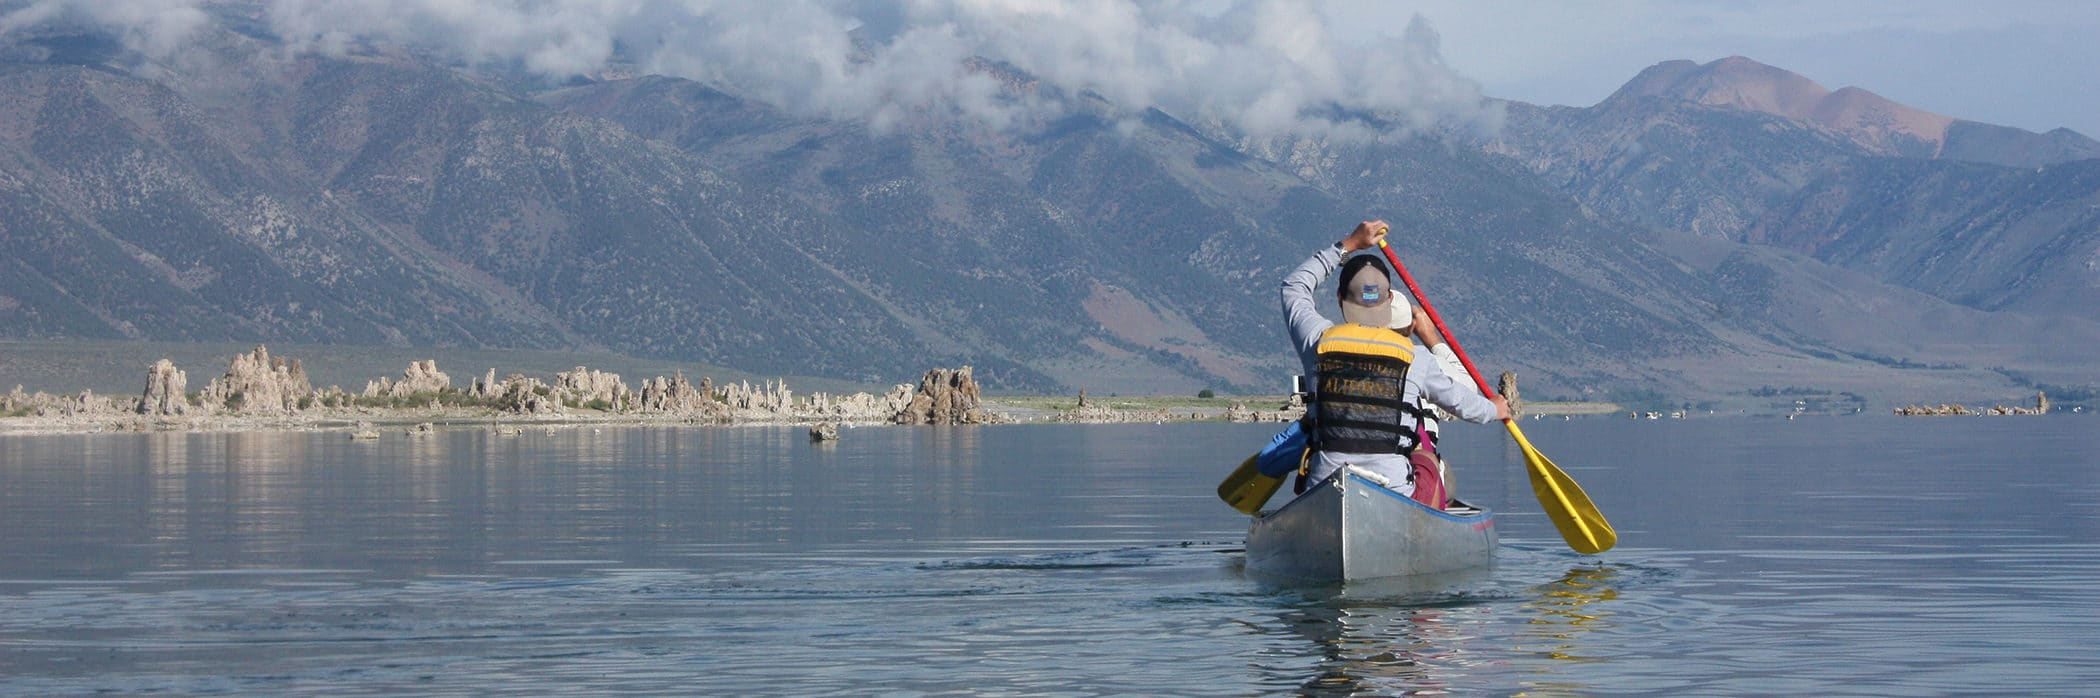 View from behind a person paddling a canoe on Mono Lake with tufa towers and tall mountains shrouded in clouds in the distance.